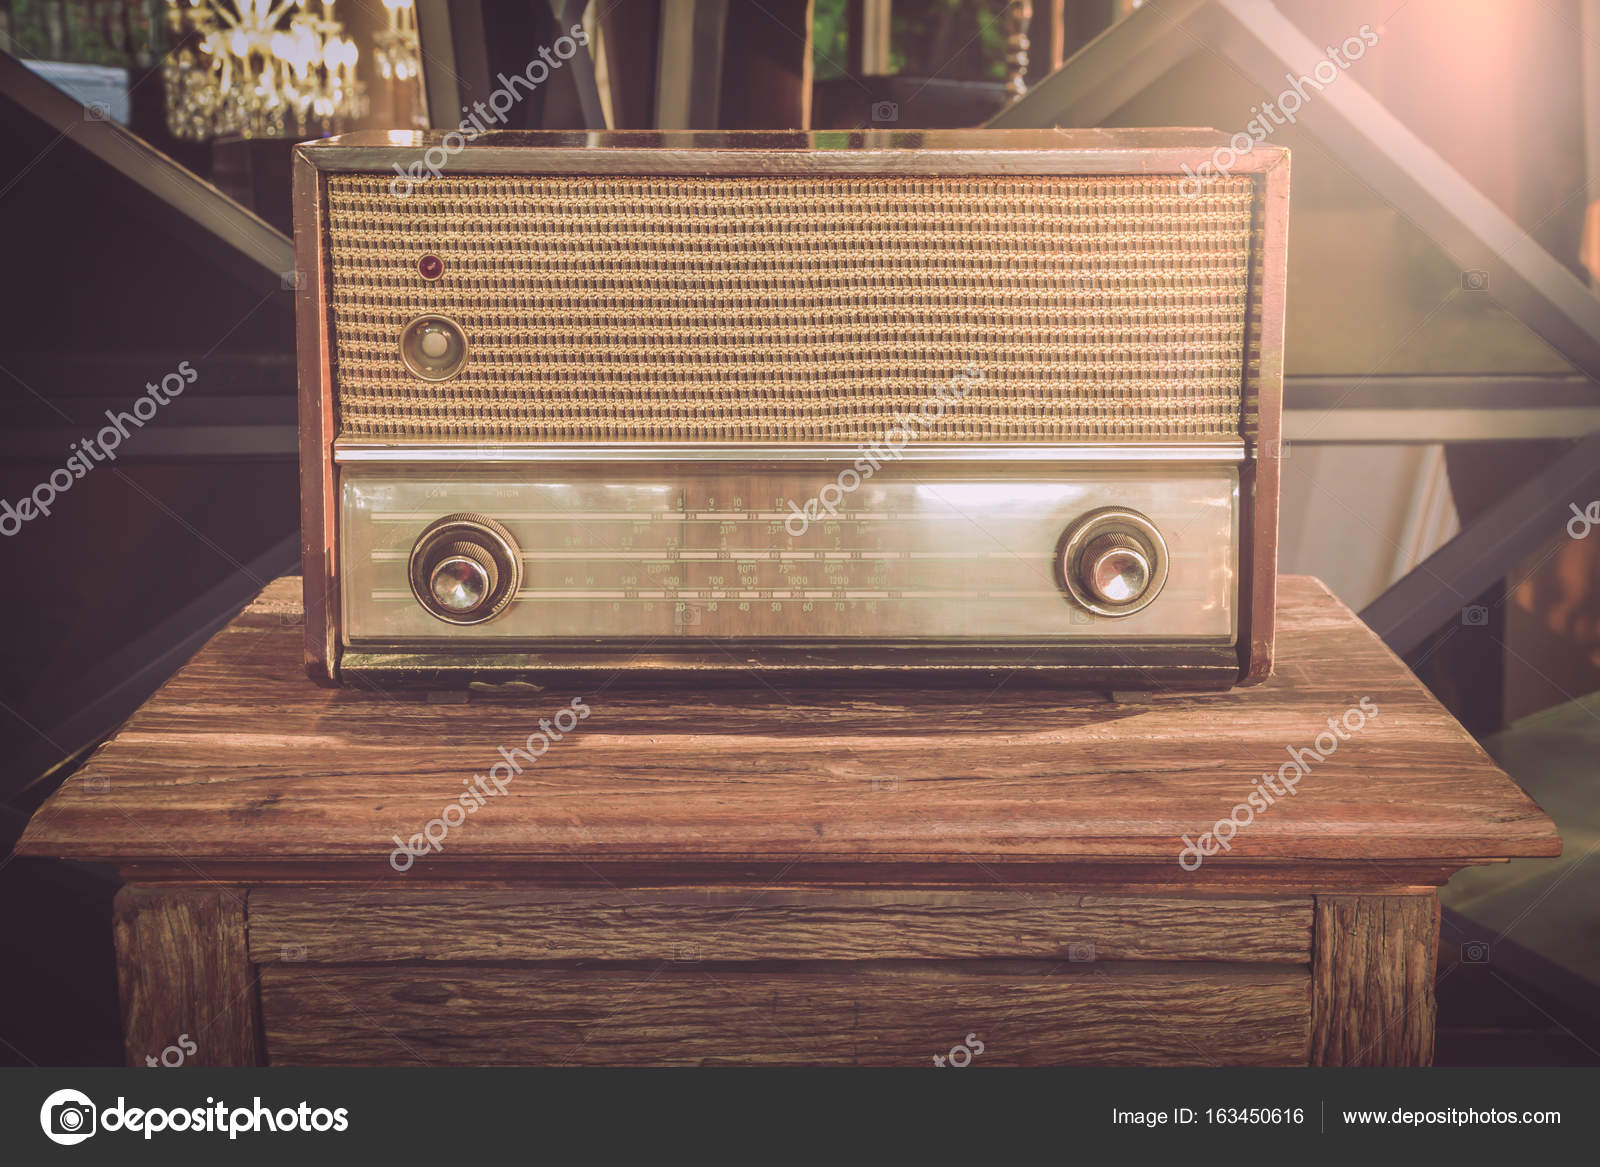 alte radios als illustrationen stockfoto kaewphoto 163450616